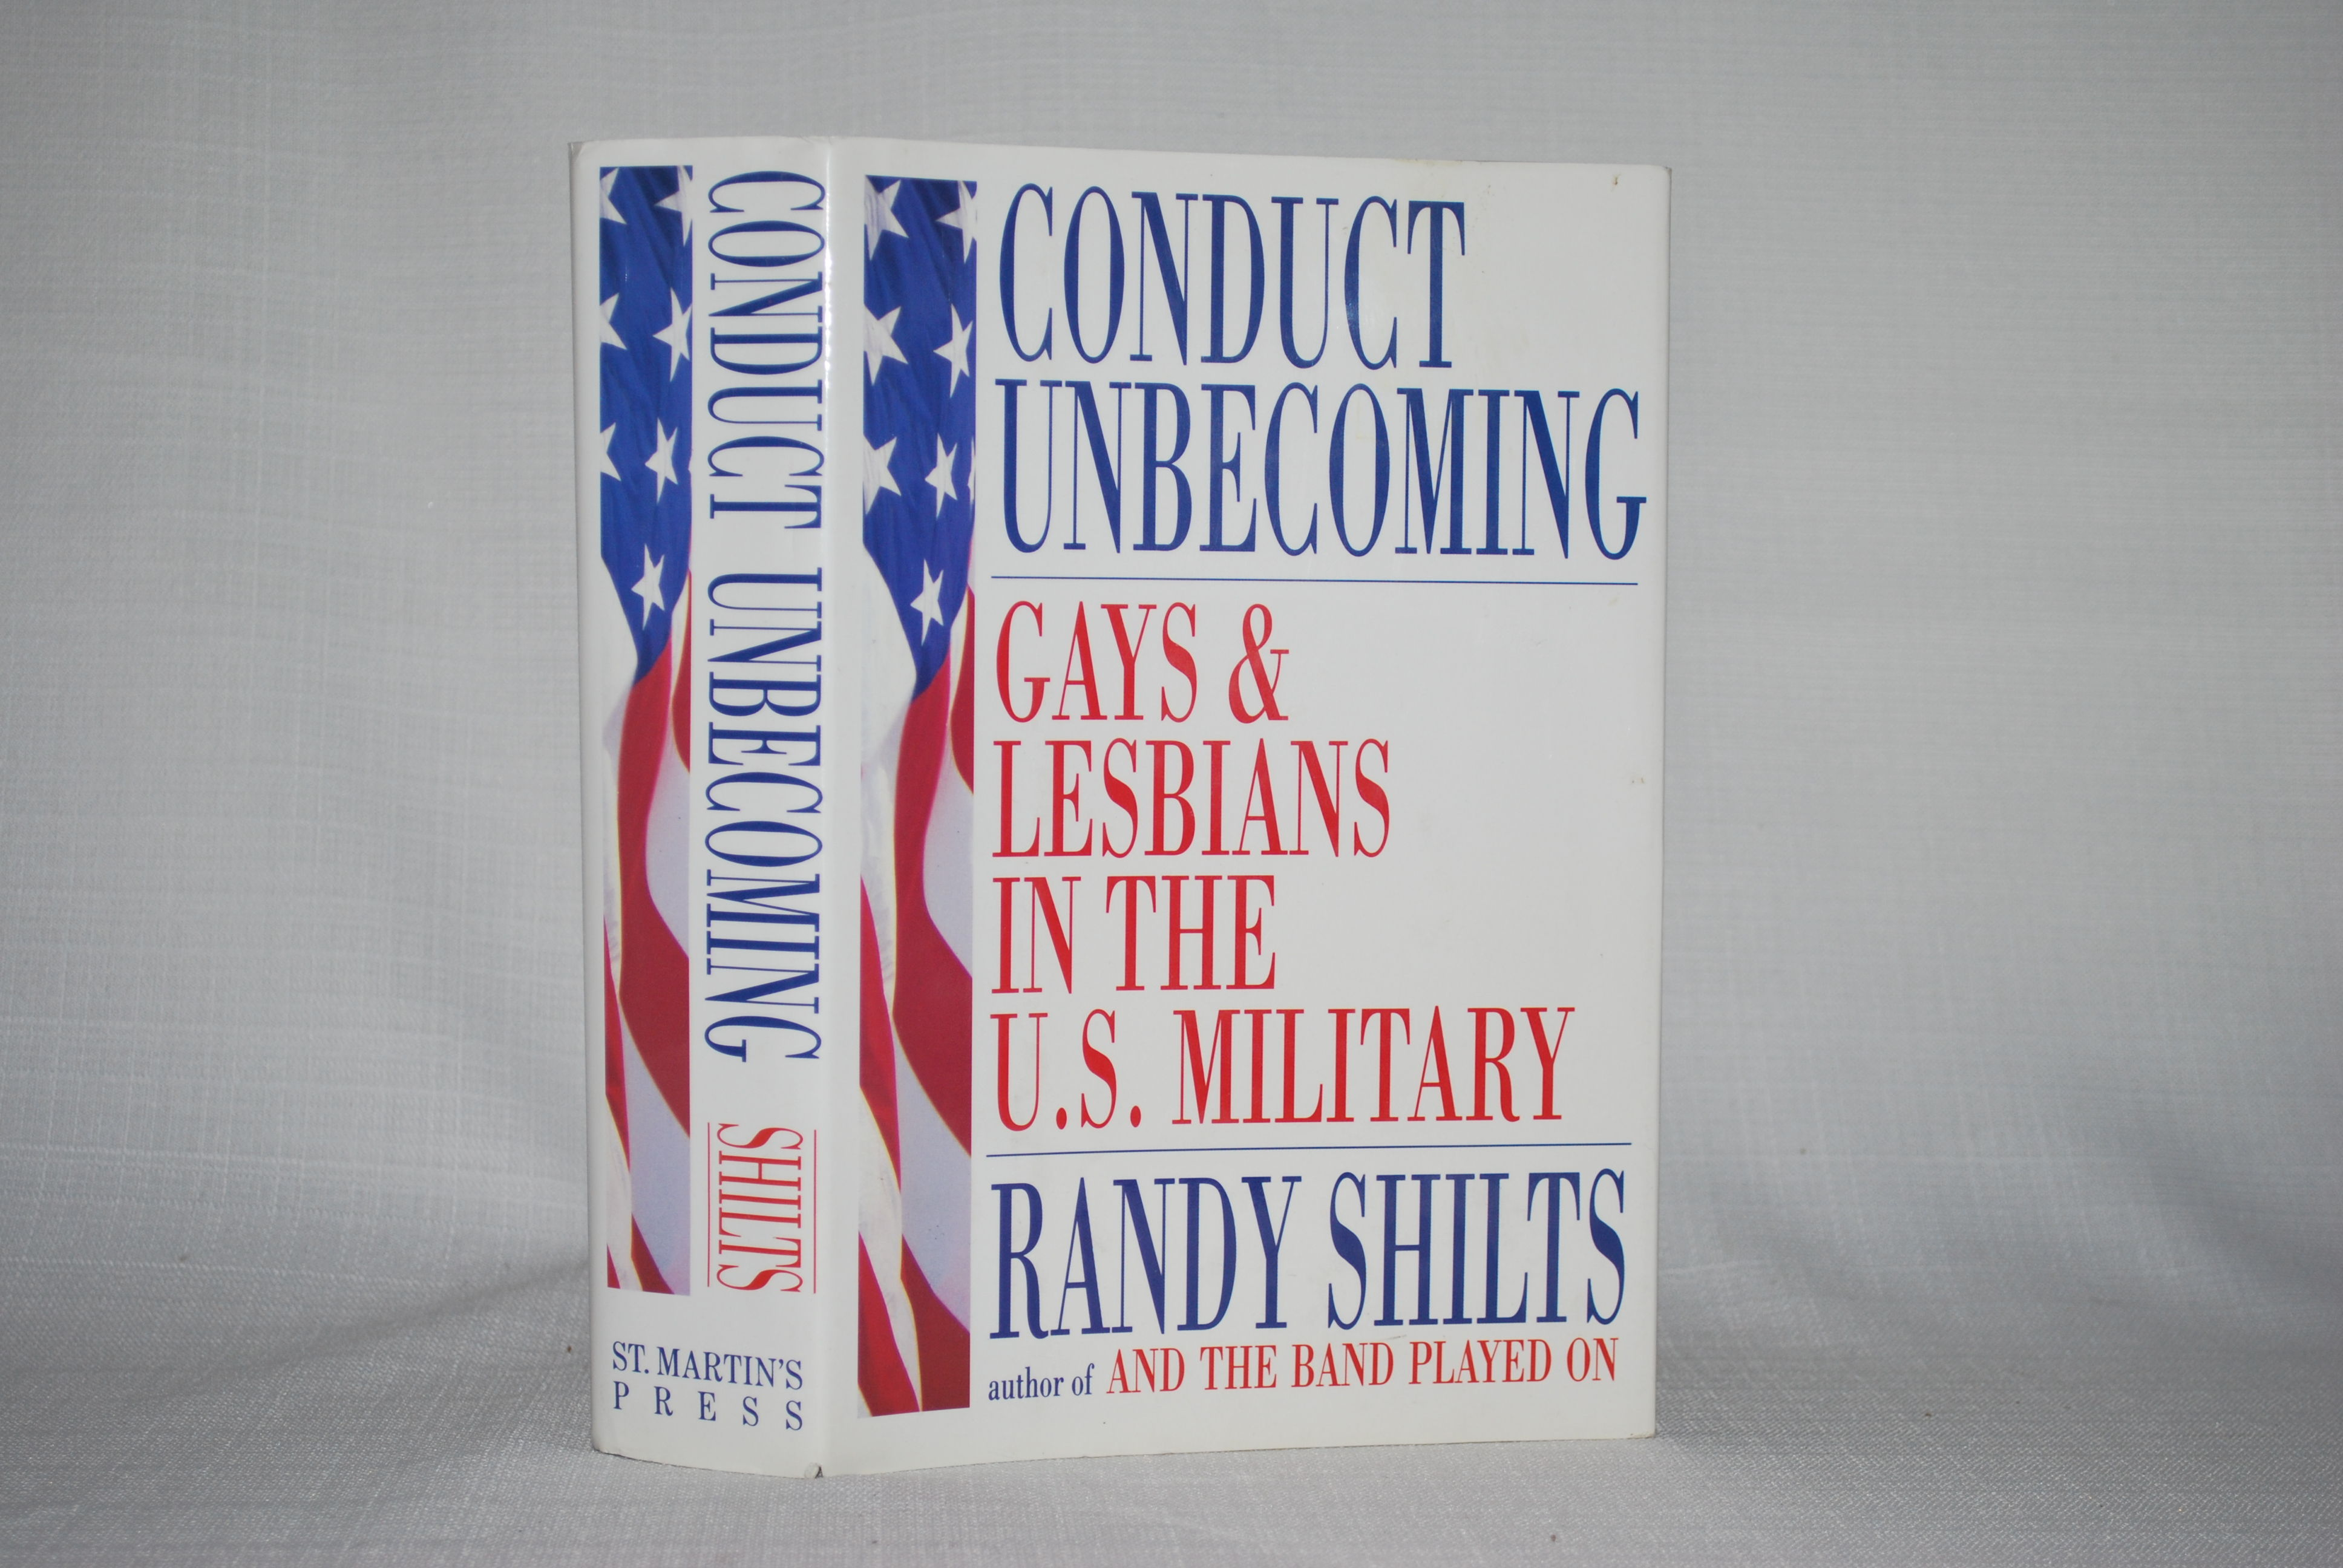 from Peter conduct gay in lesbian military u.s unbecoming